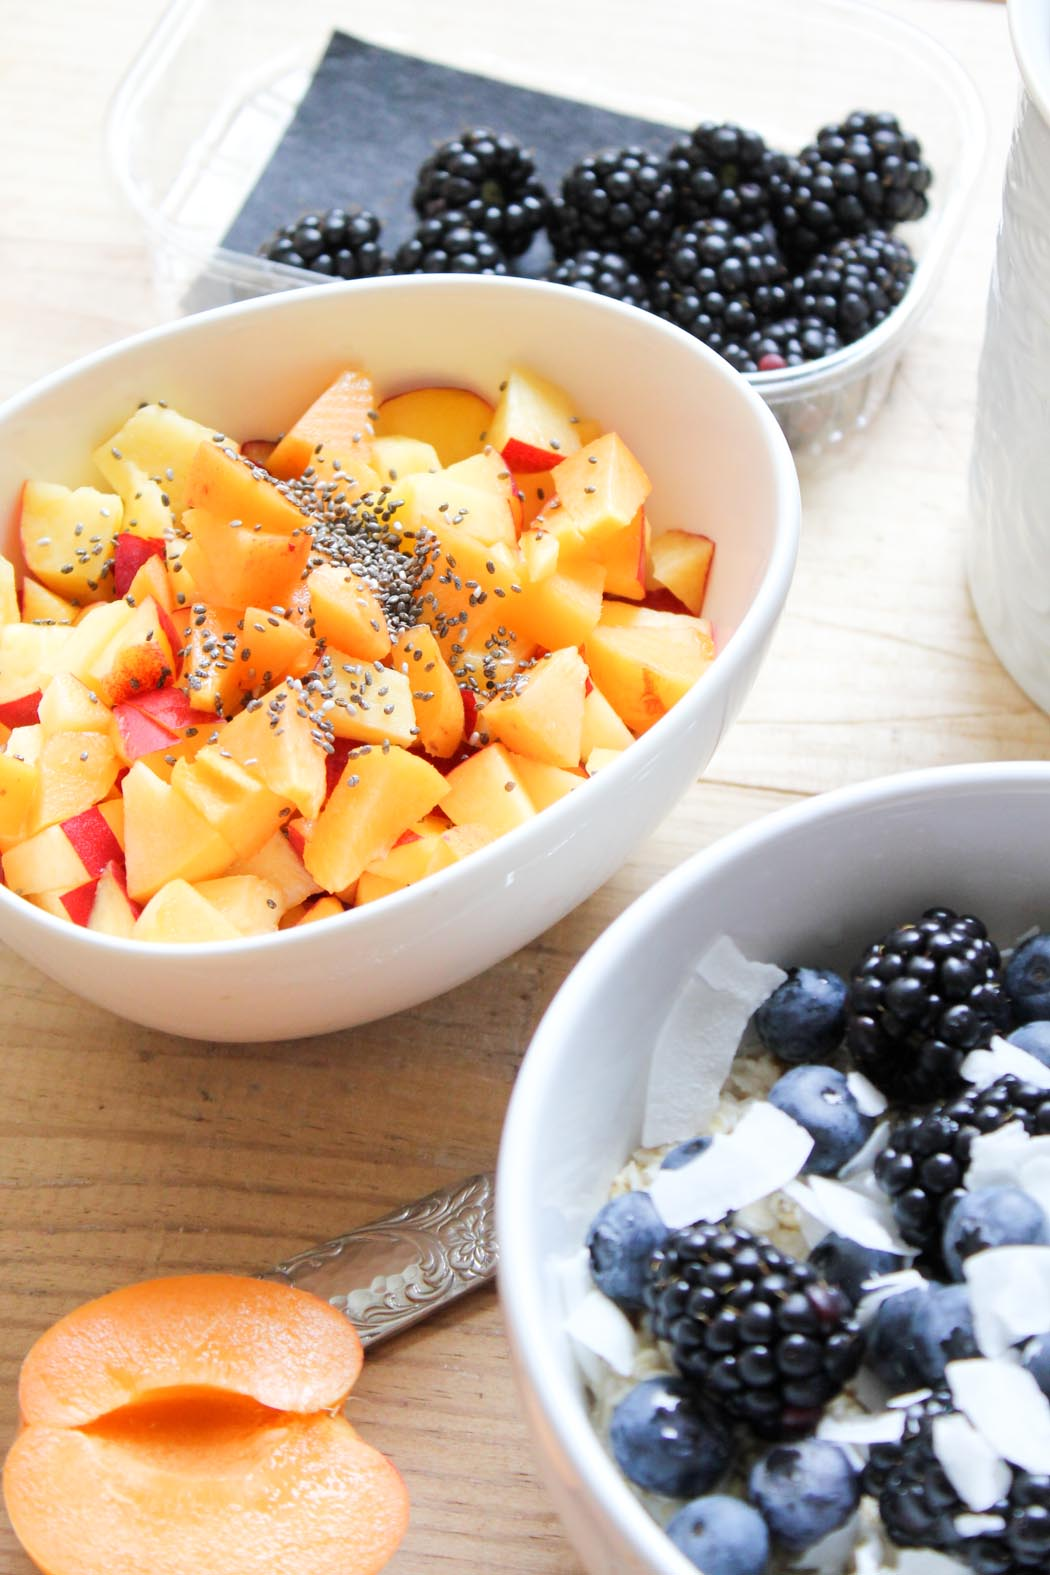 Lindarella-Foodblogger-Cleaneating-Oatmeal-Blueberry-Breakfastdream-3